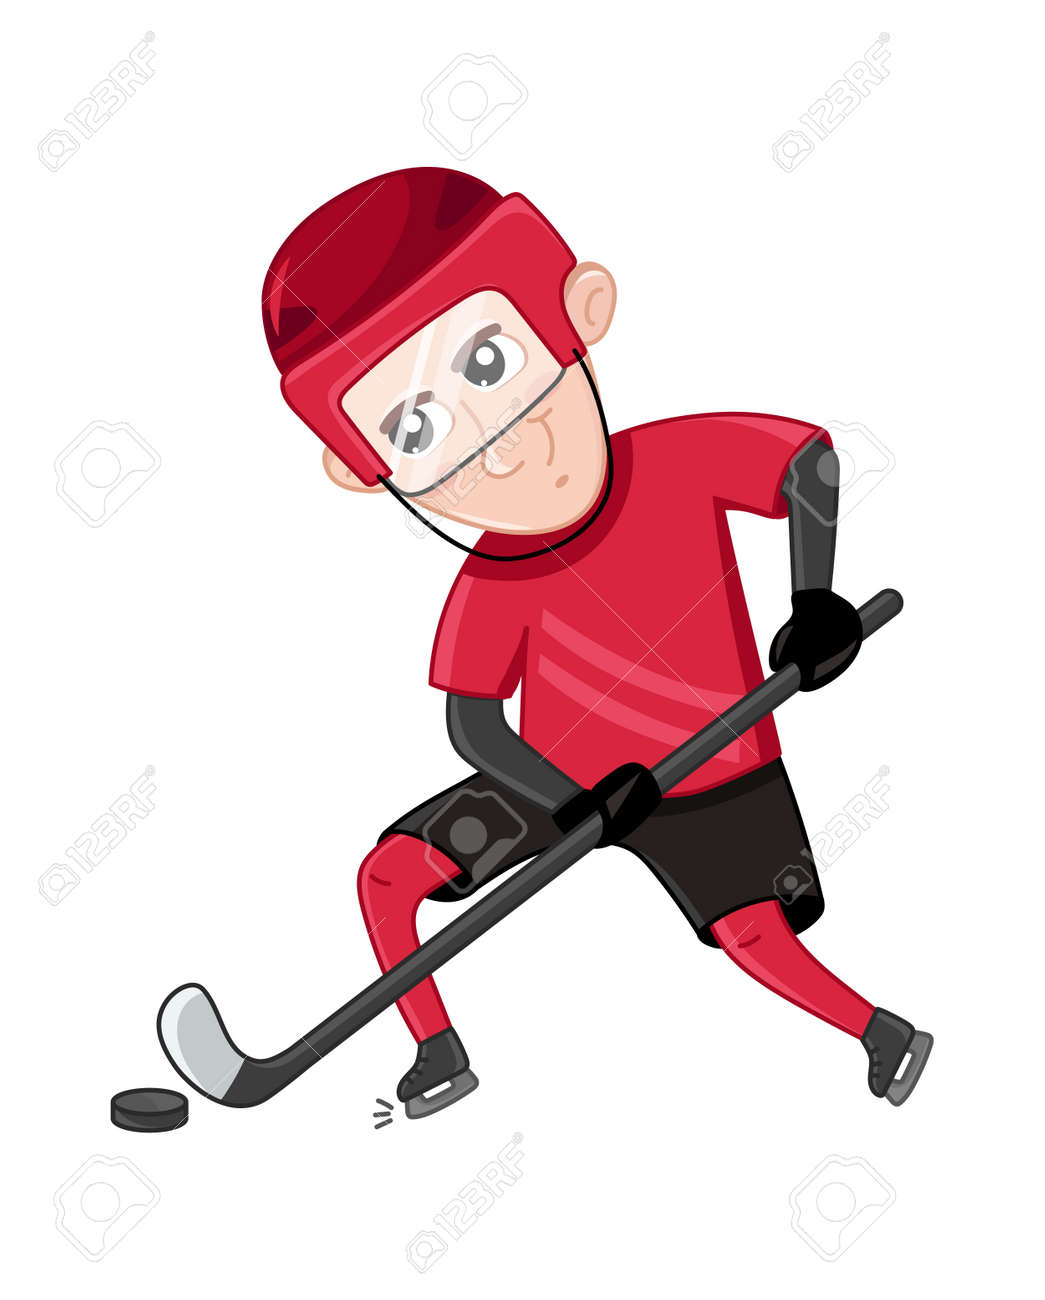 Boy Ice Hockey Player In Sport Uniform Interesting Children Royalty Free Cliparts Vectors And Stock Illustration Image 83943092